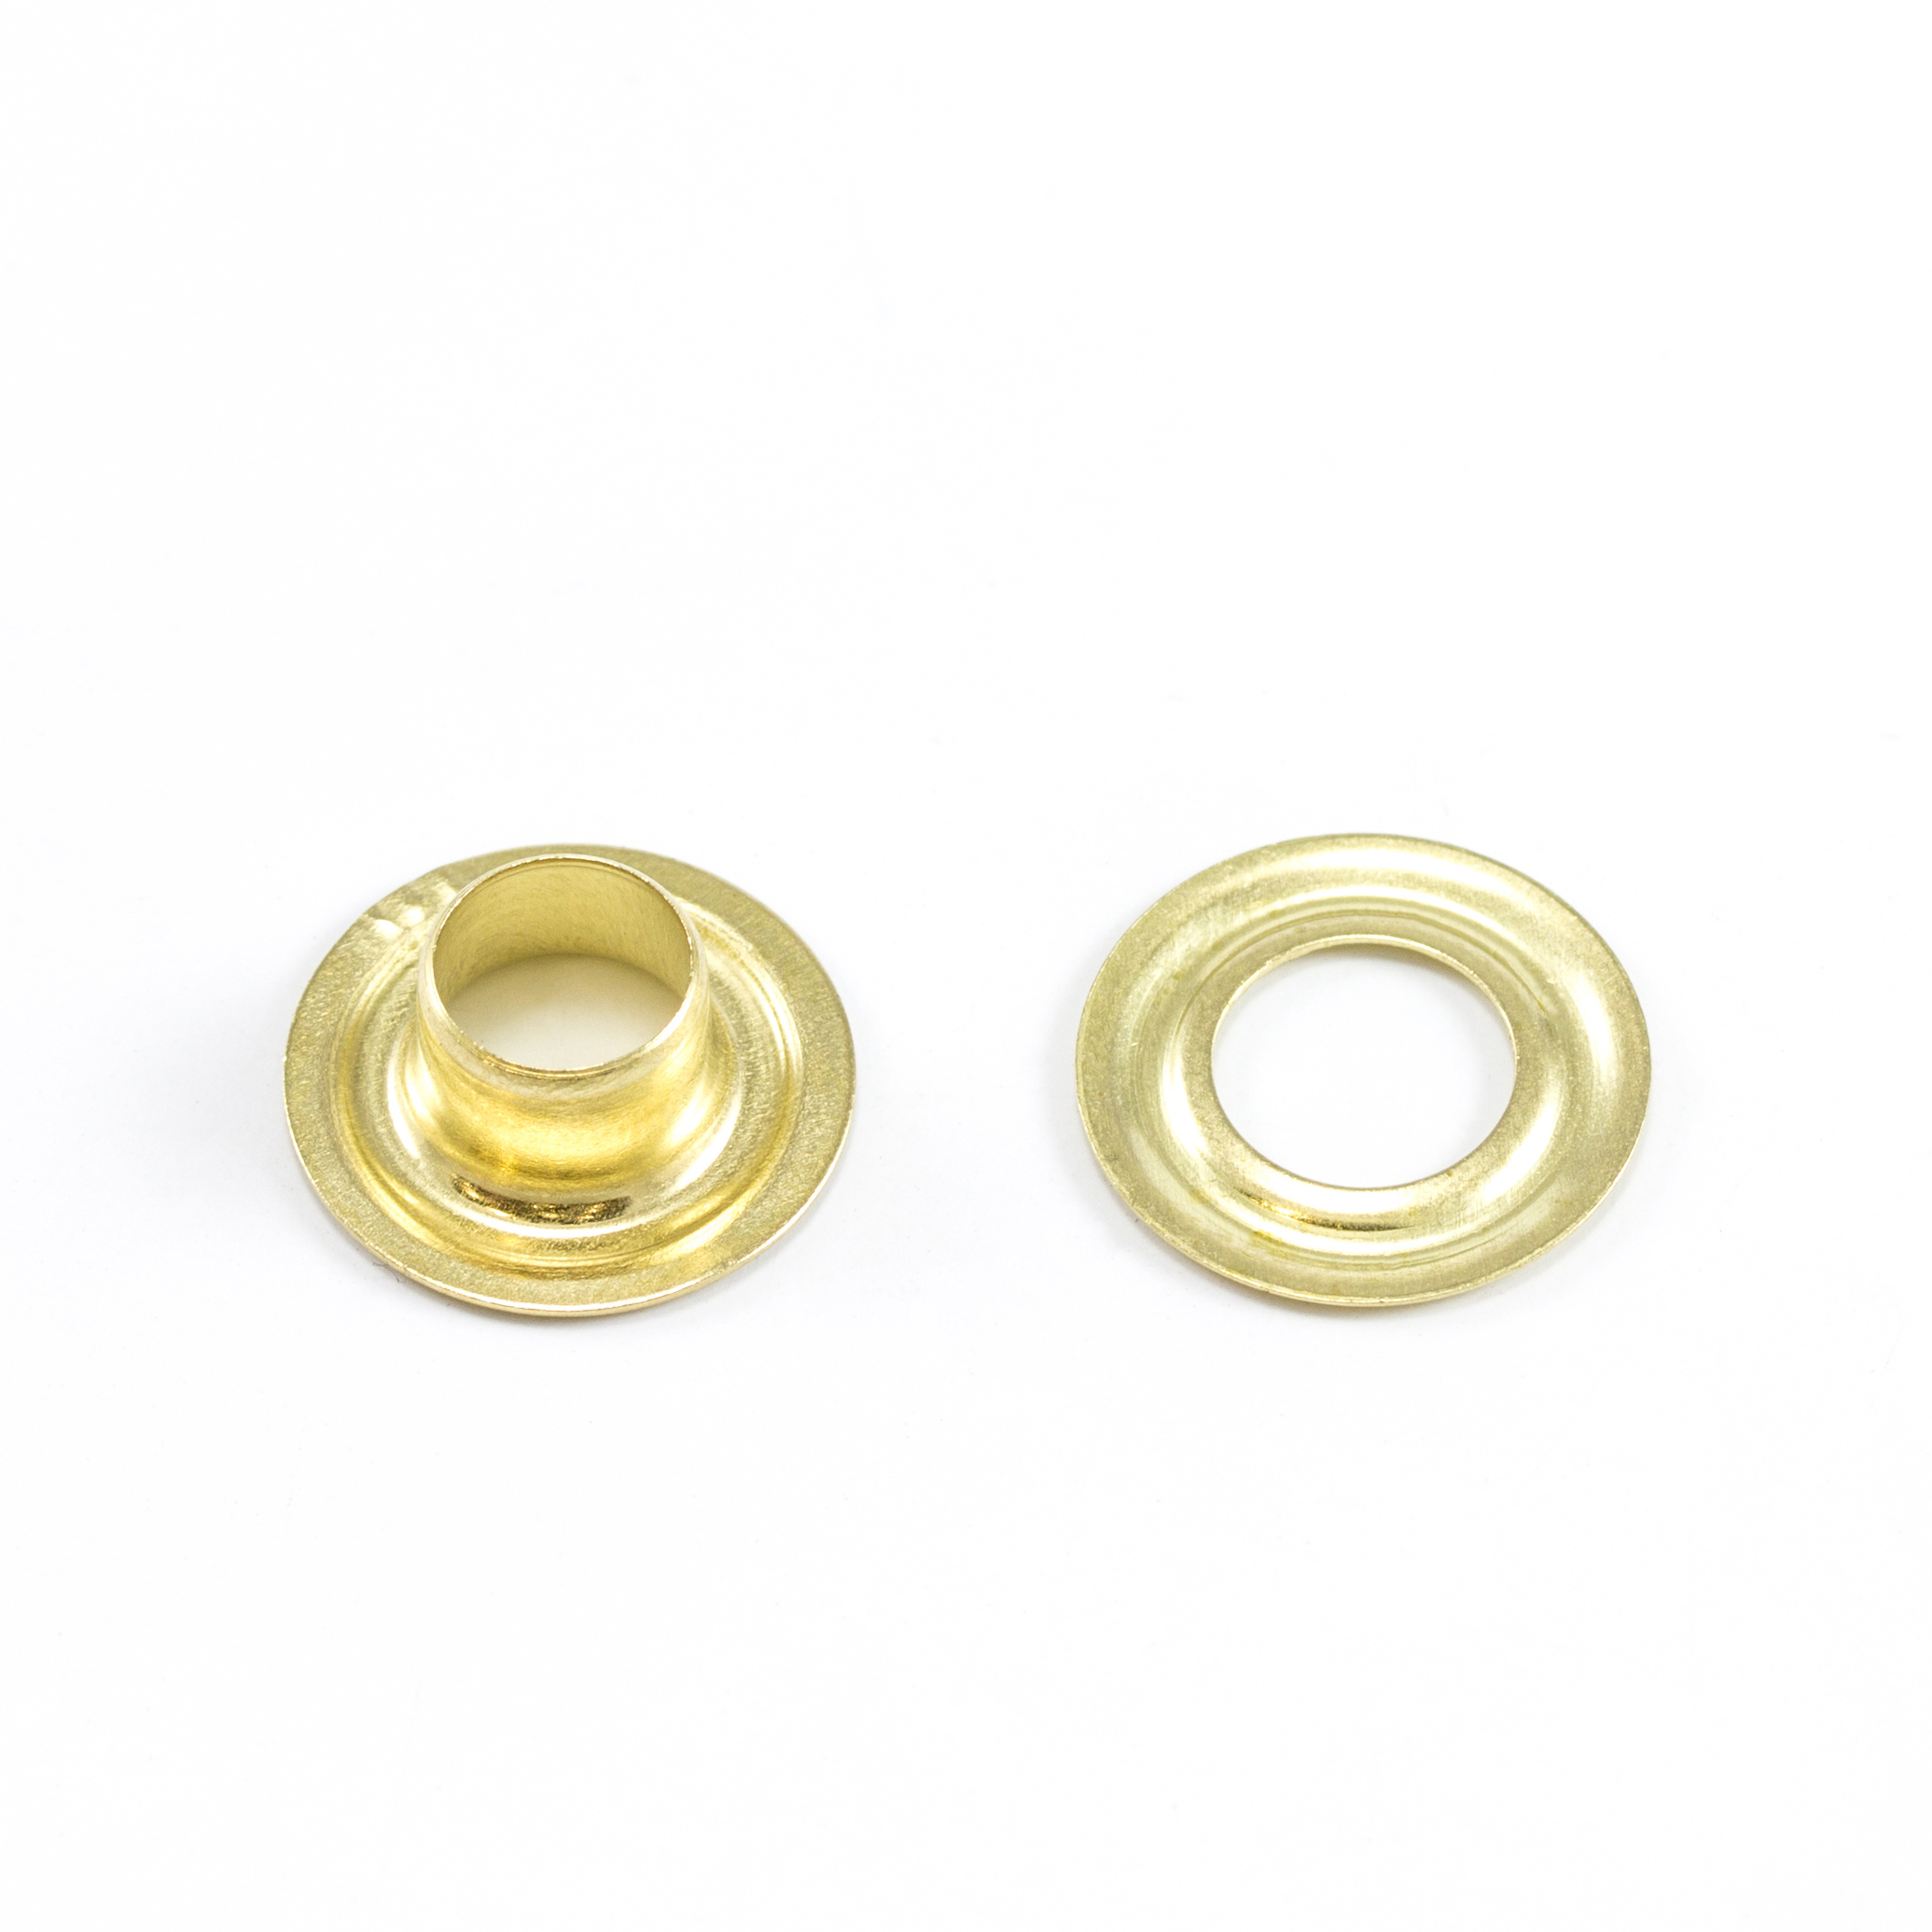 DOT Grommet with Plain Washer #0 Brass 1/4